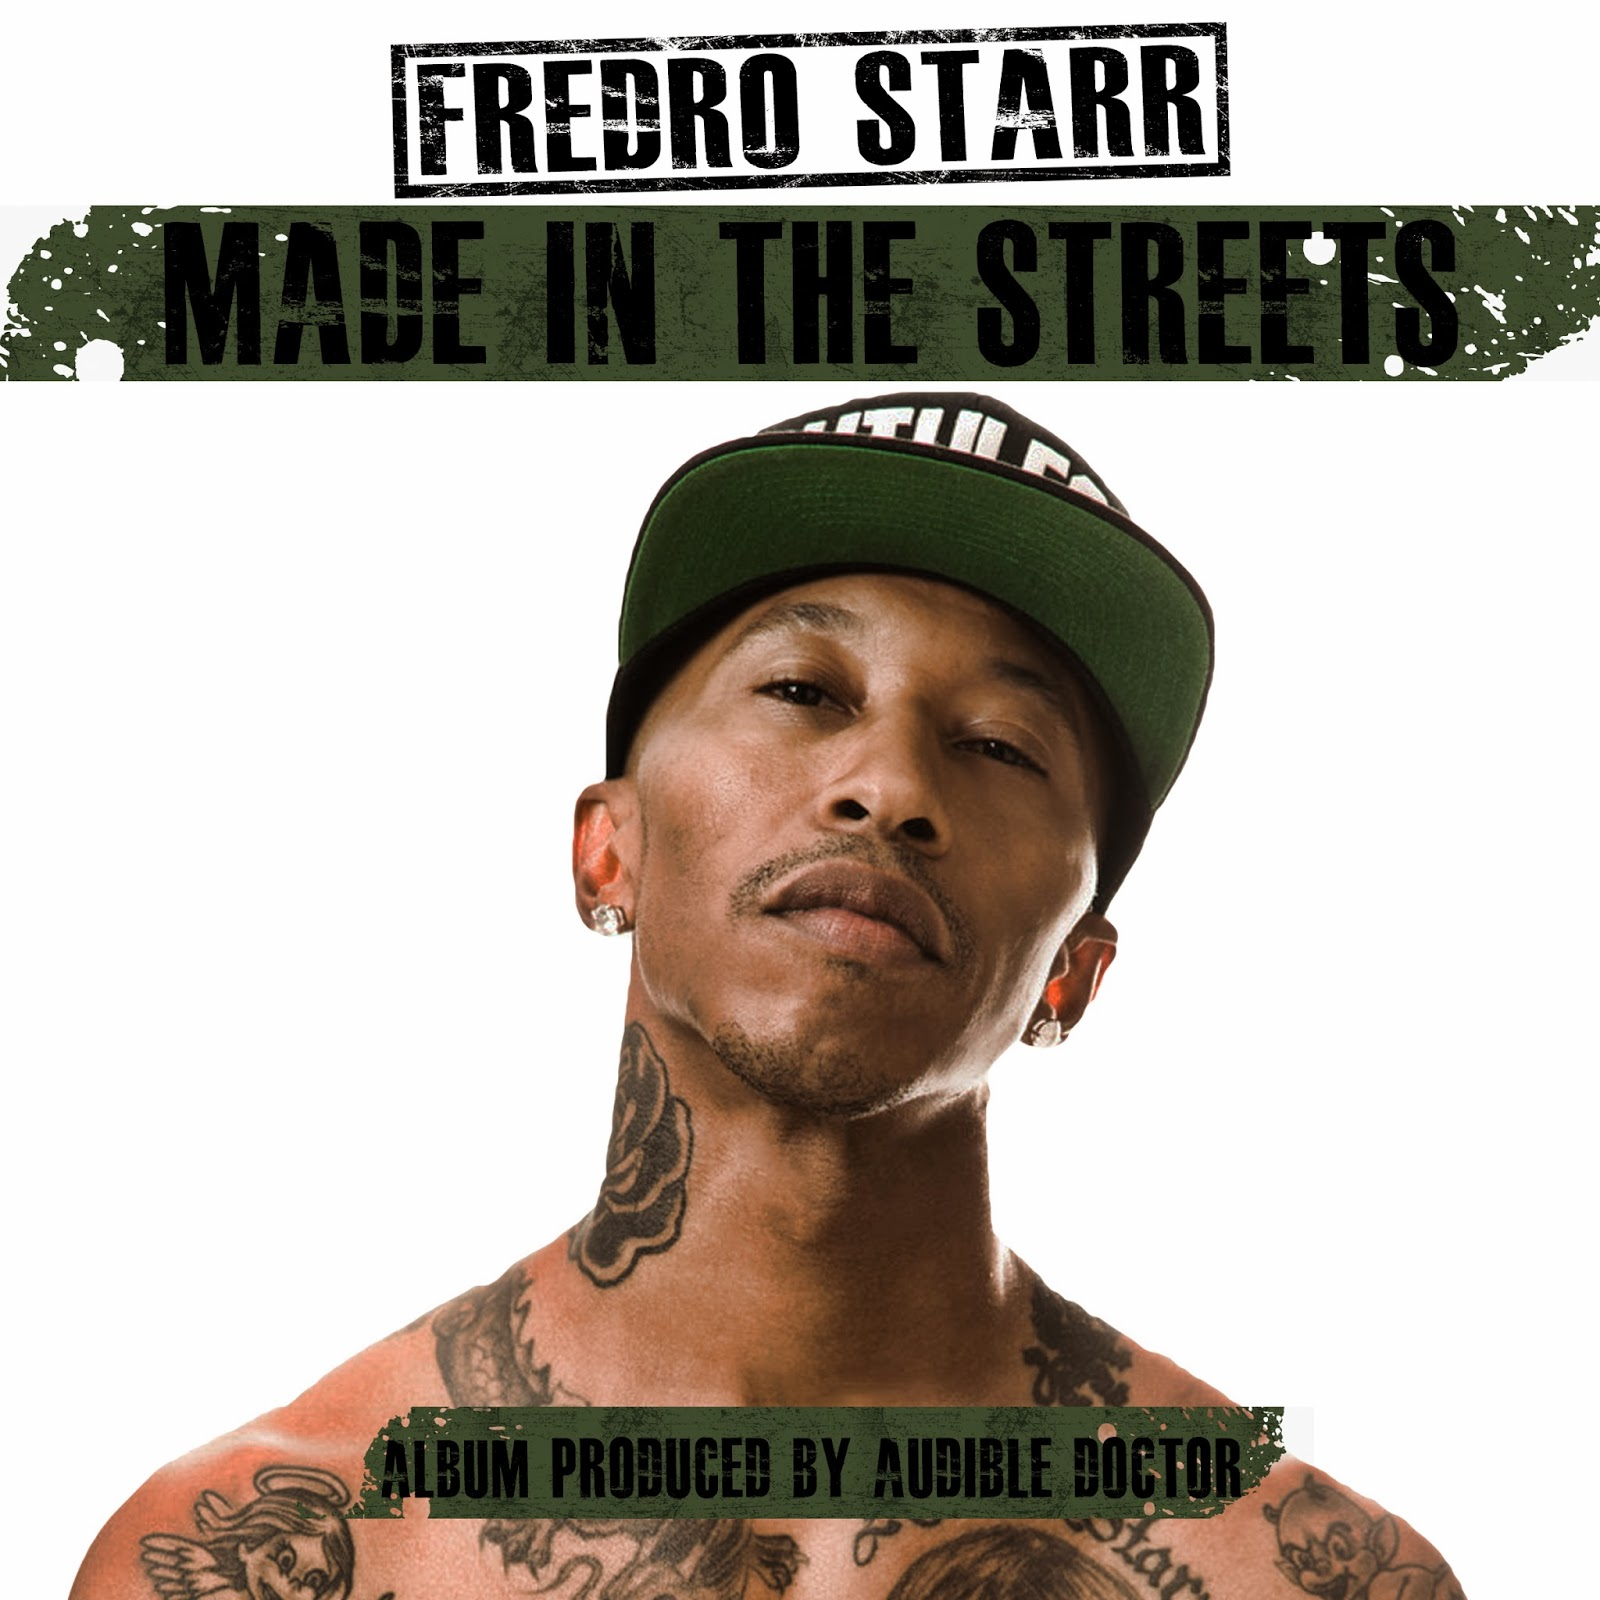 Fredro Starr x Audible Doctor - Made In The StreetsFredro Starr 2014